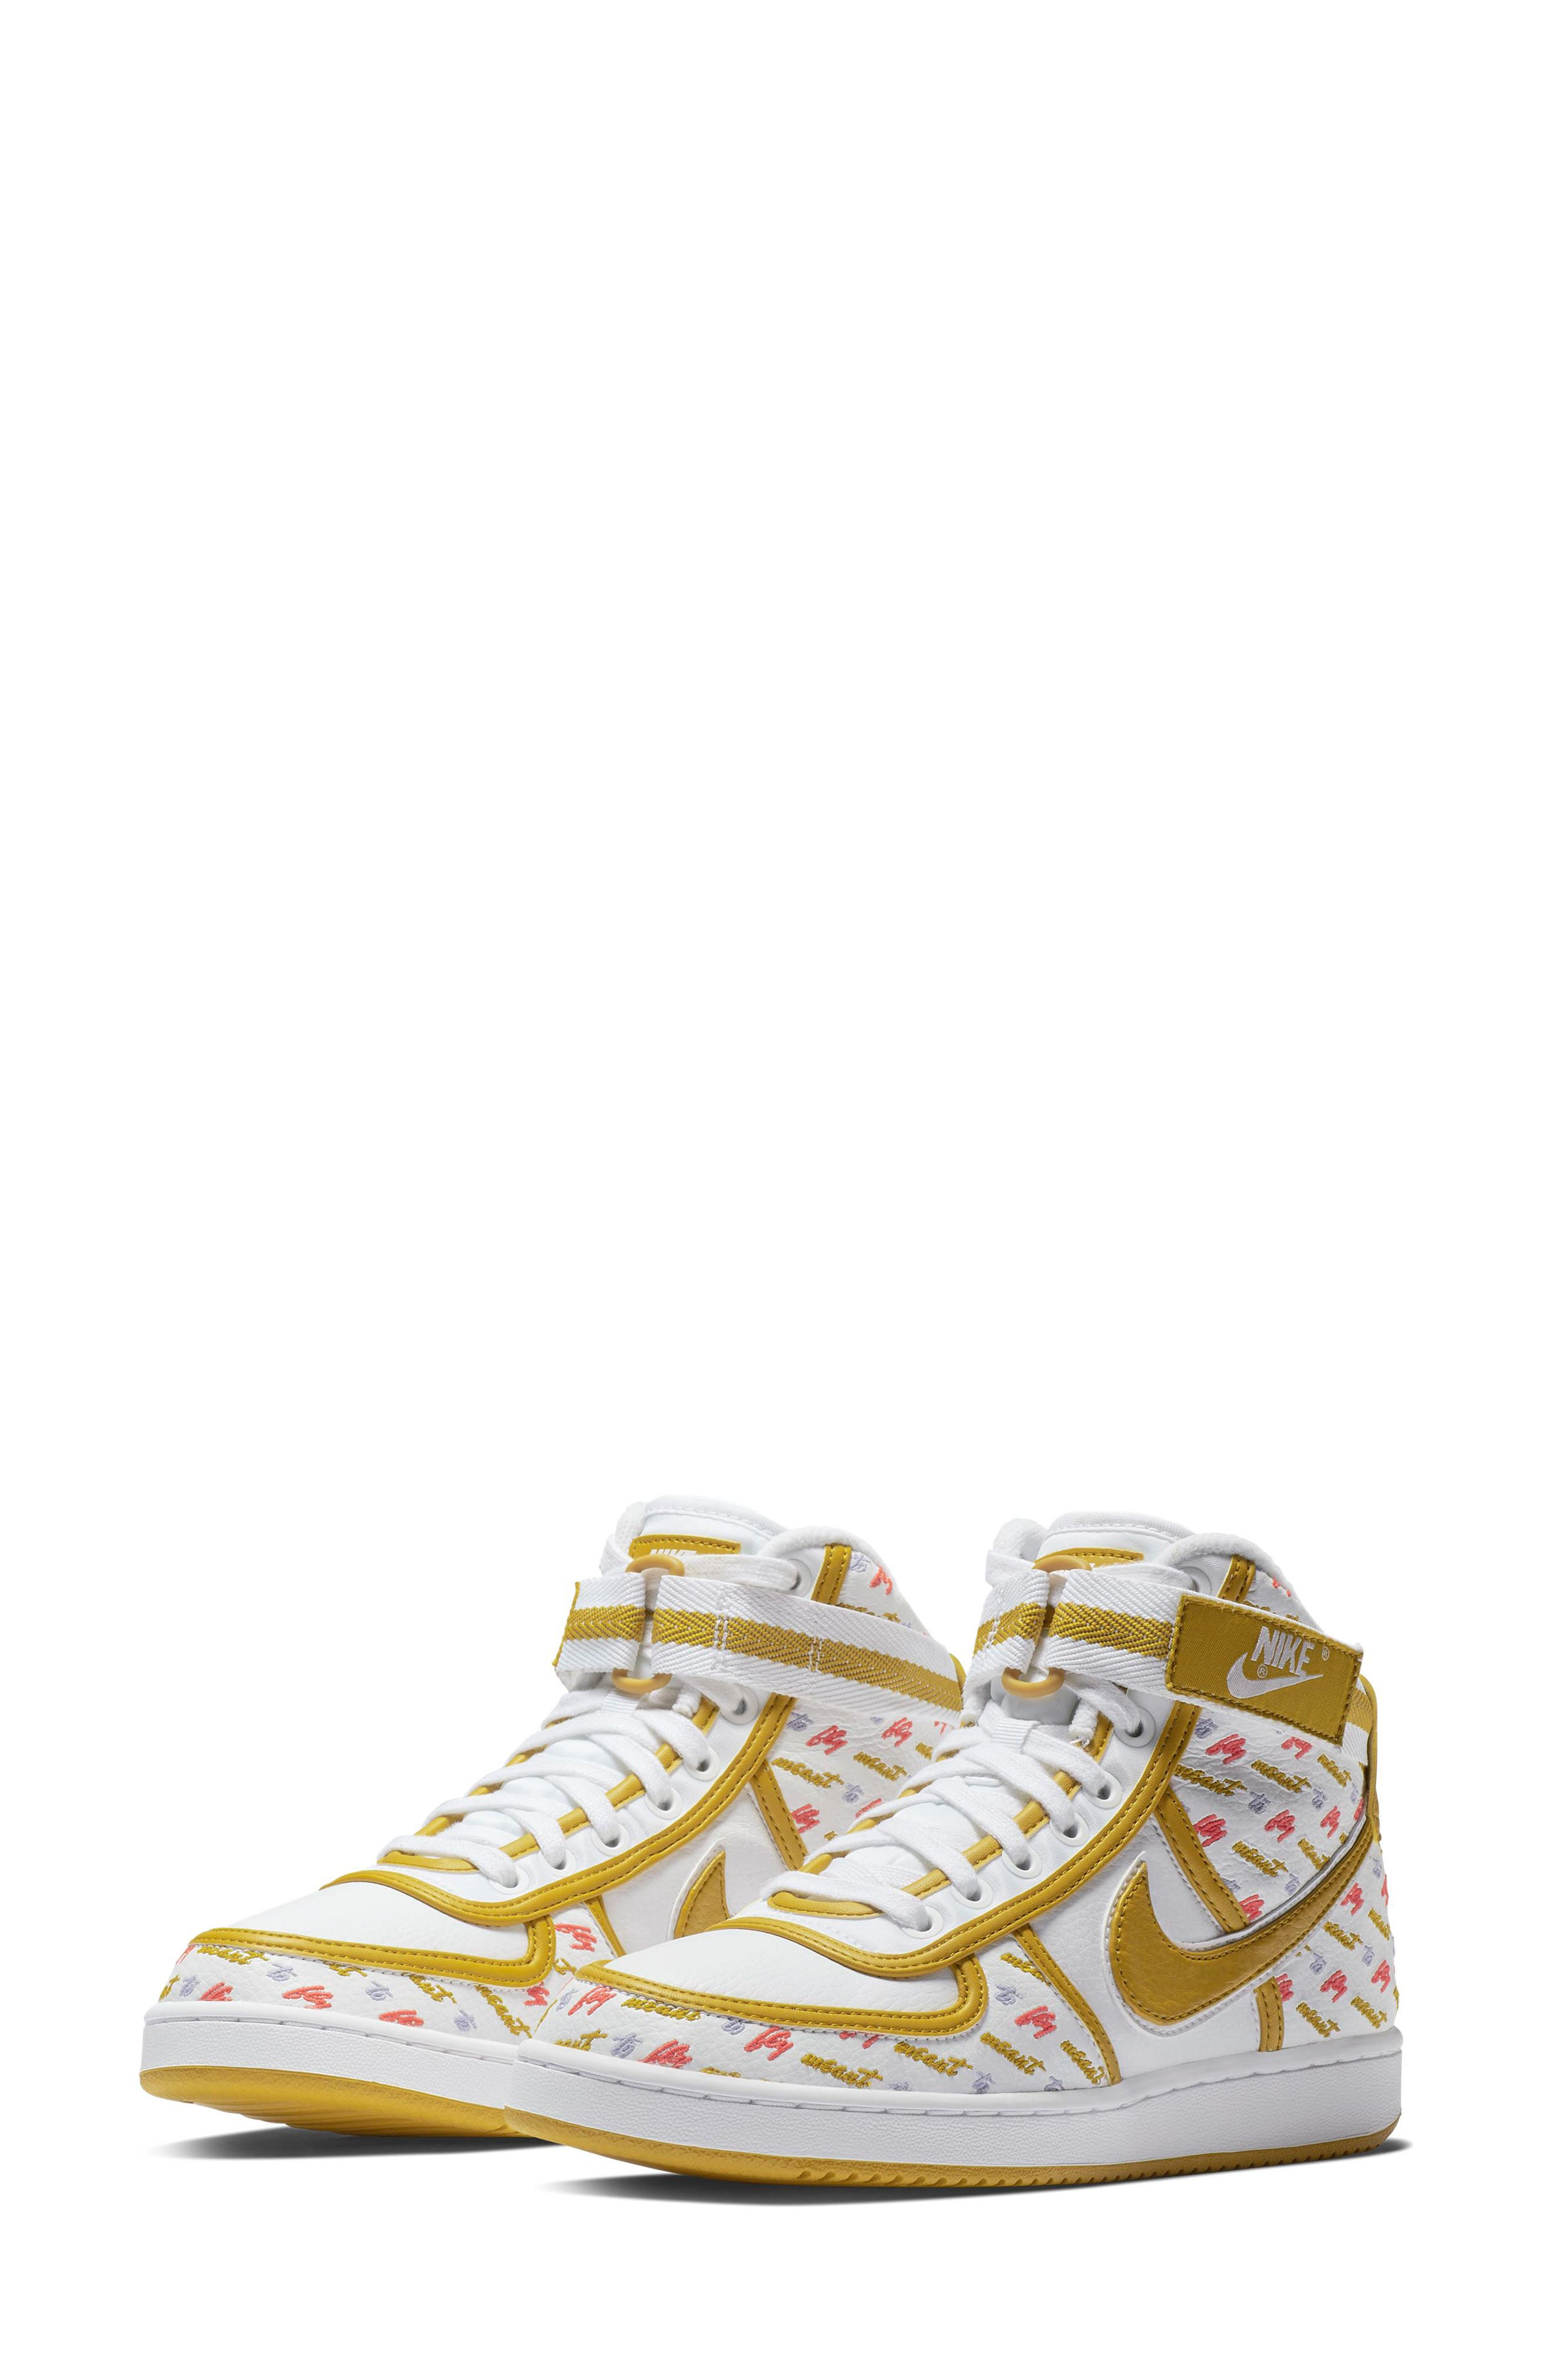 NIKE Vandal High Lux Sneaker, Main, color, WHITE/ CITRON/ TWILIGHT PULSE